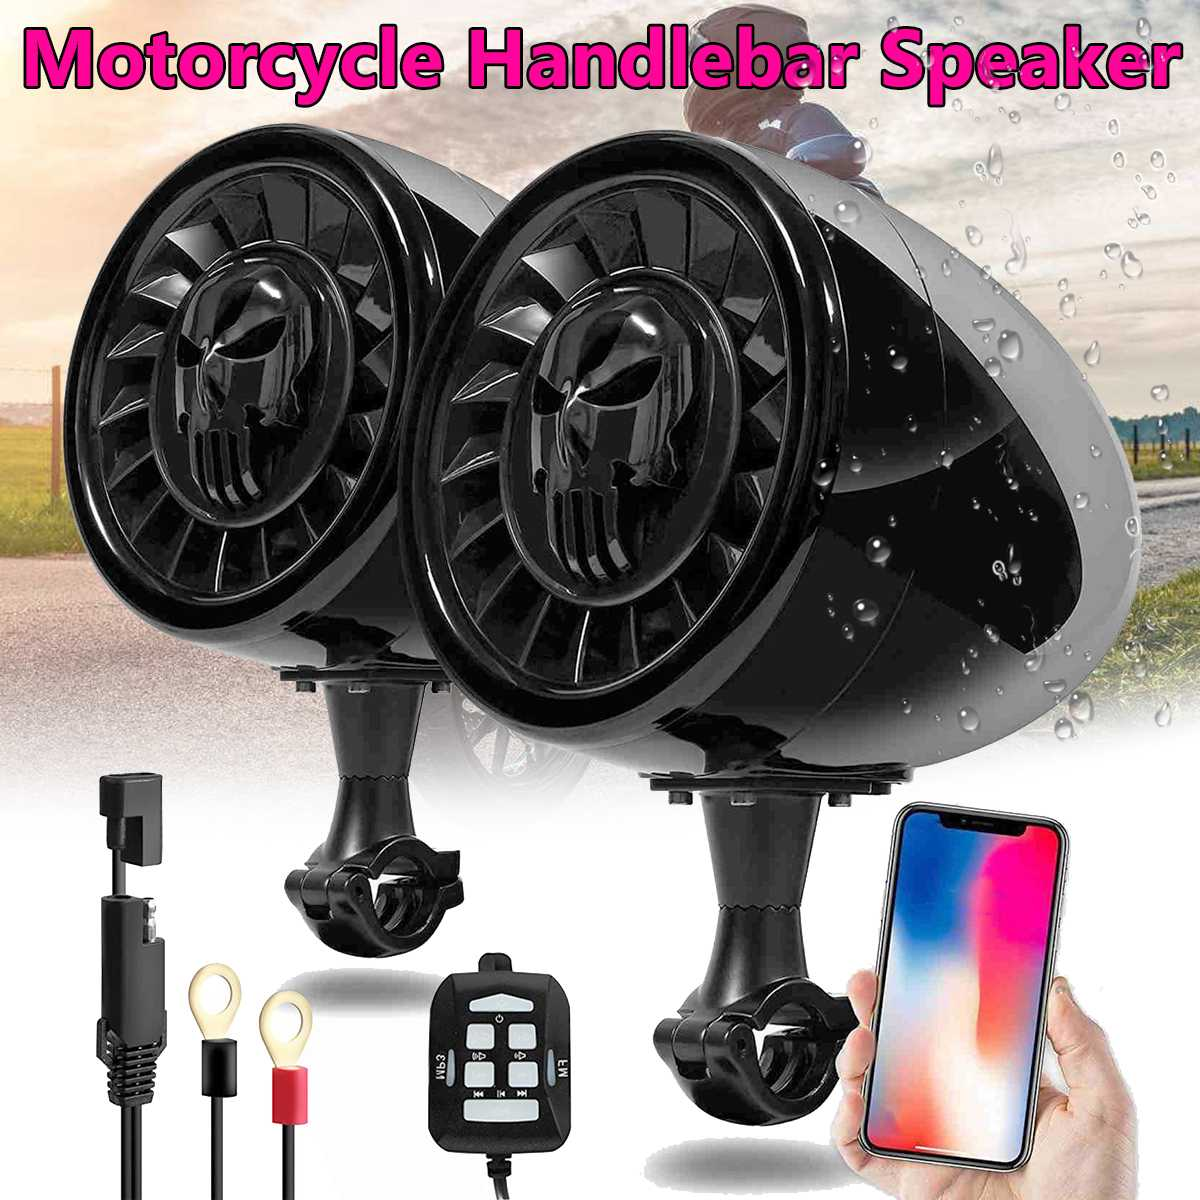 600W MP3 Music Audio Player bluetooth Speakers For Motorcycle Waterproof Portable Stereo Motos Handlebar Audio Amp System600W MP3 Music Audio Player bluetooth Speakers For Motorcycle Waterproof Portable Stereo Motos Handlebar Audio Amp System